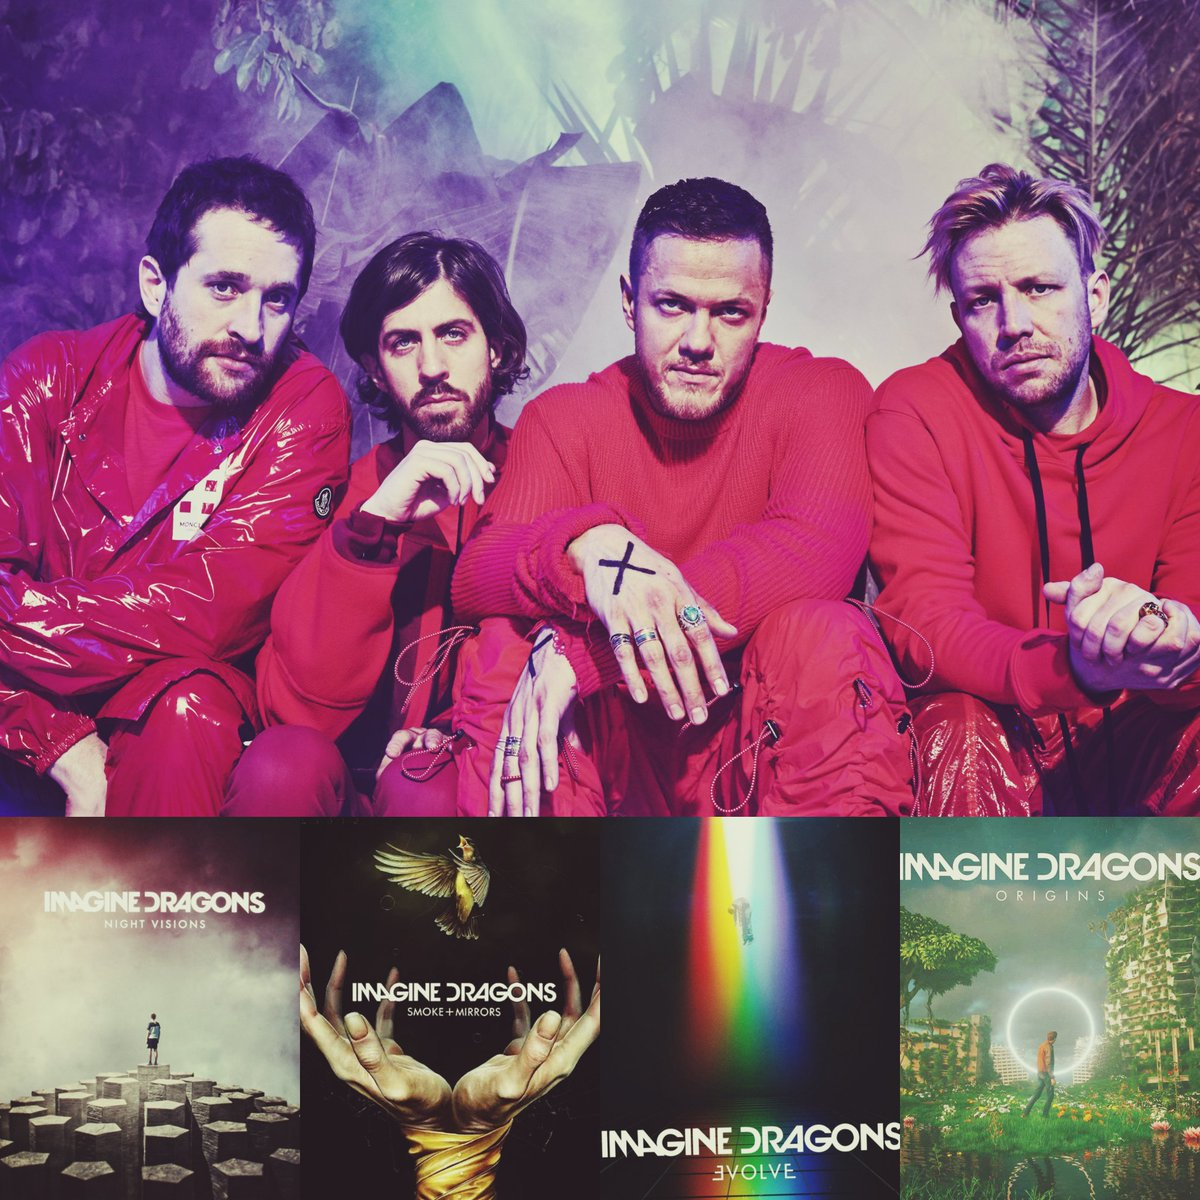 @Imaginedragons always number one in my playlist 🖤💯🎶 #IMAGINEDRAGONS #ORIGINS https://t.co/xys4nR4oCj